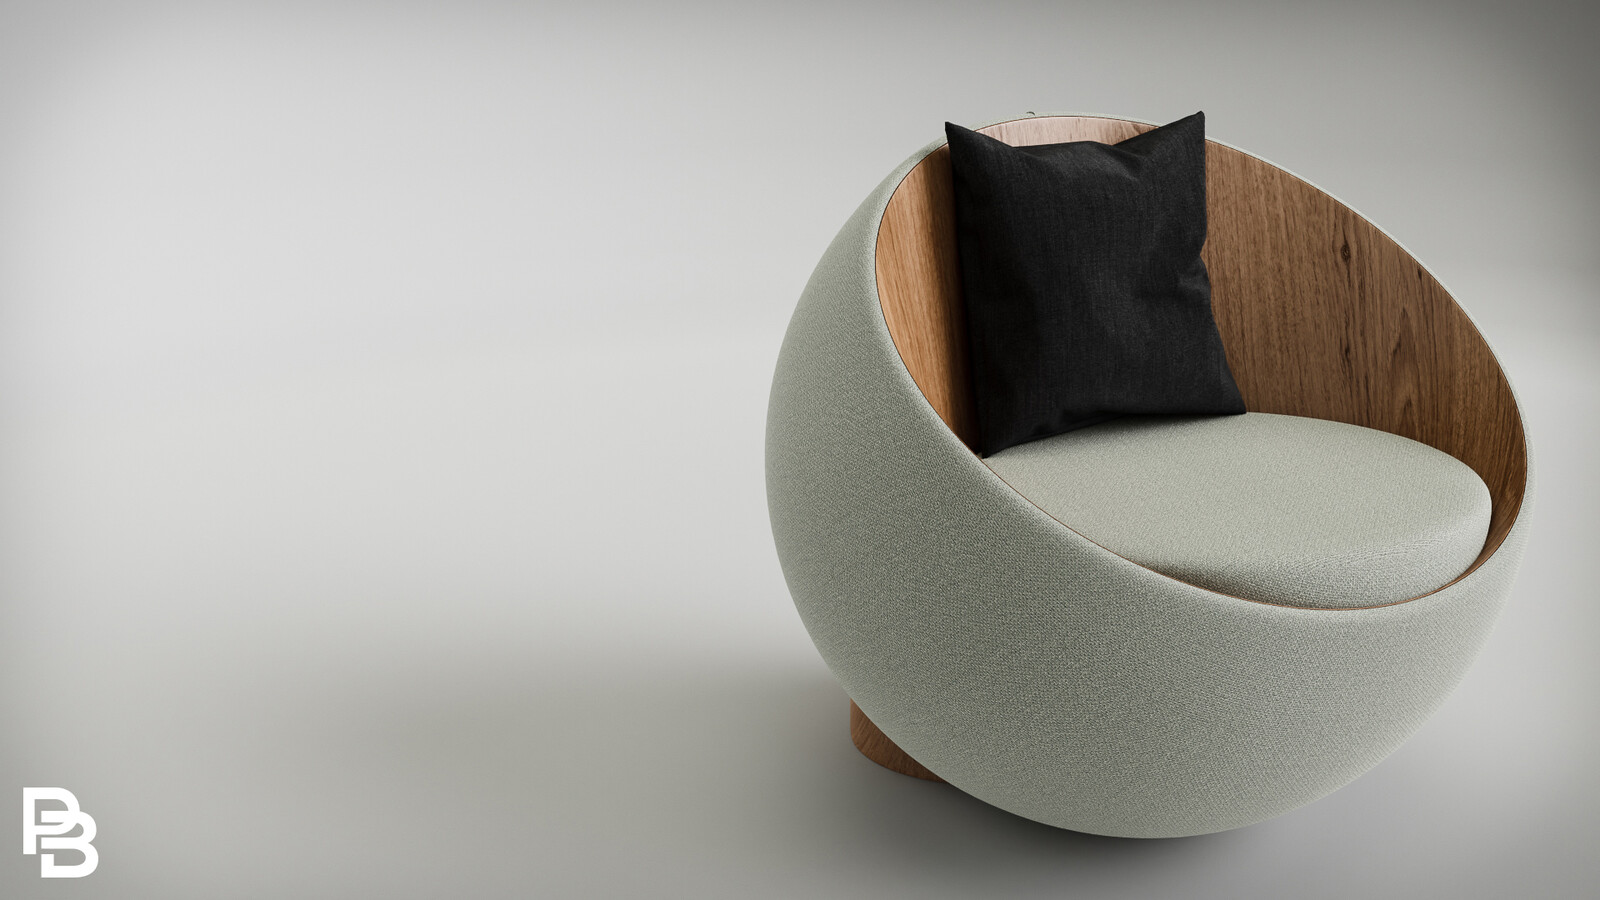 Spherical Seat